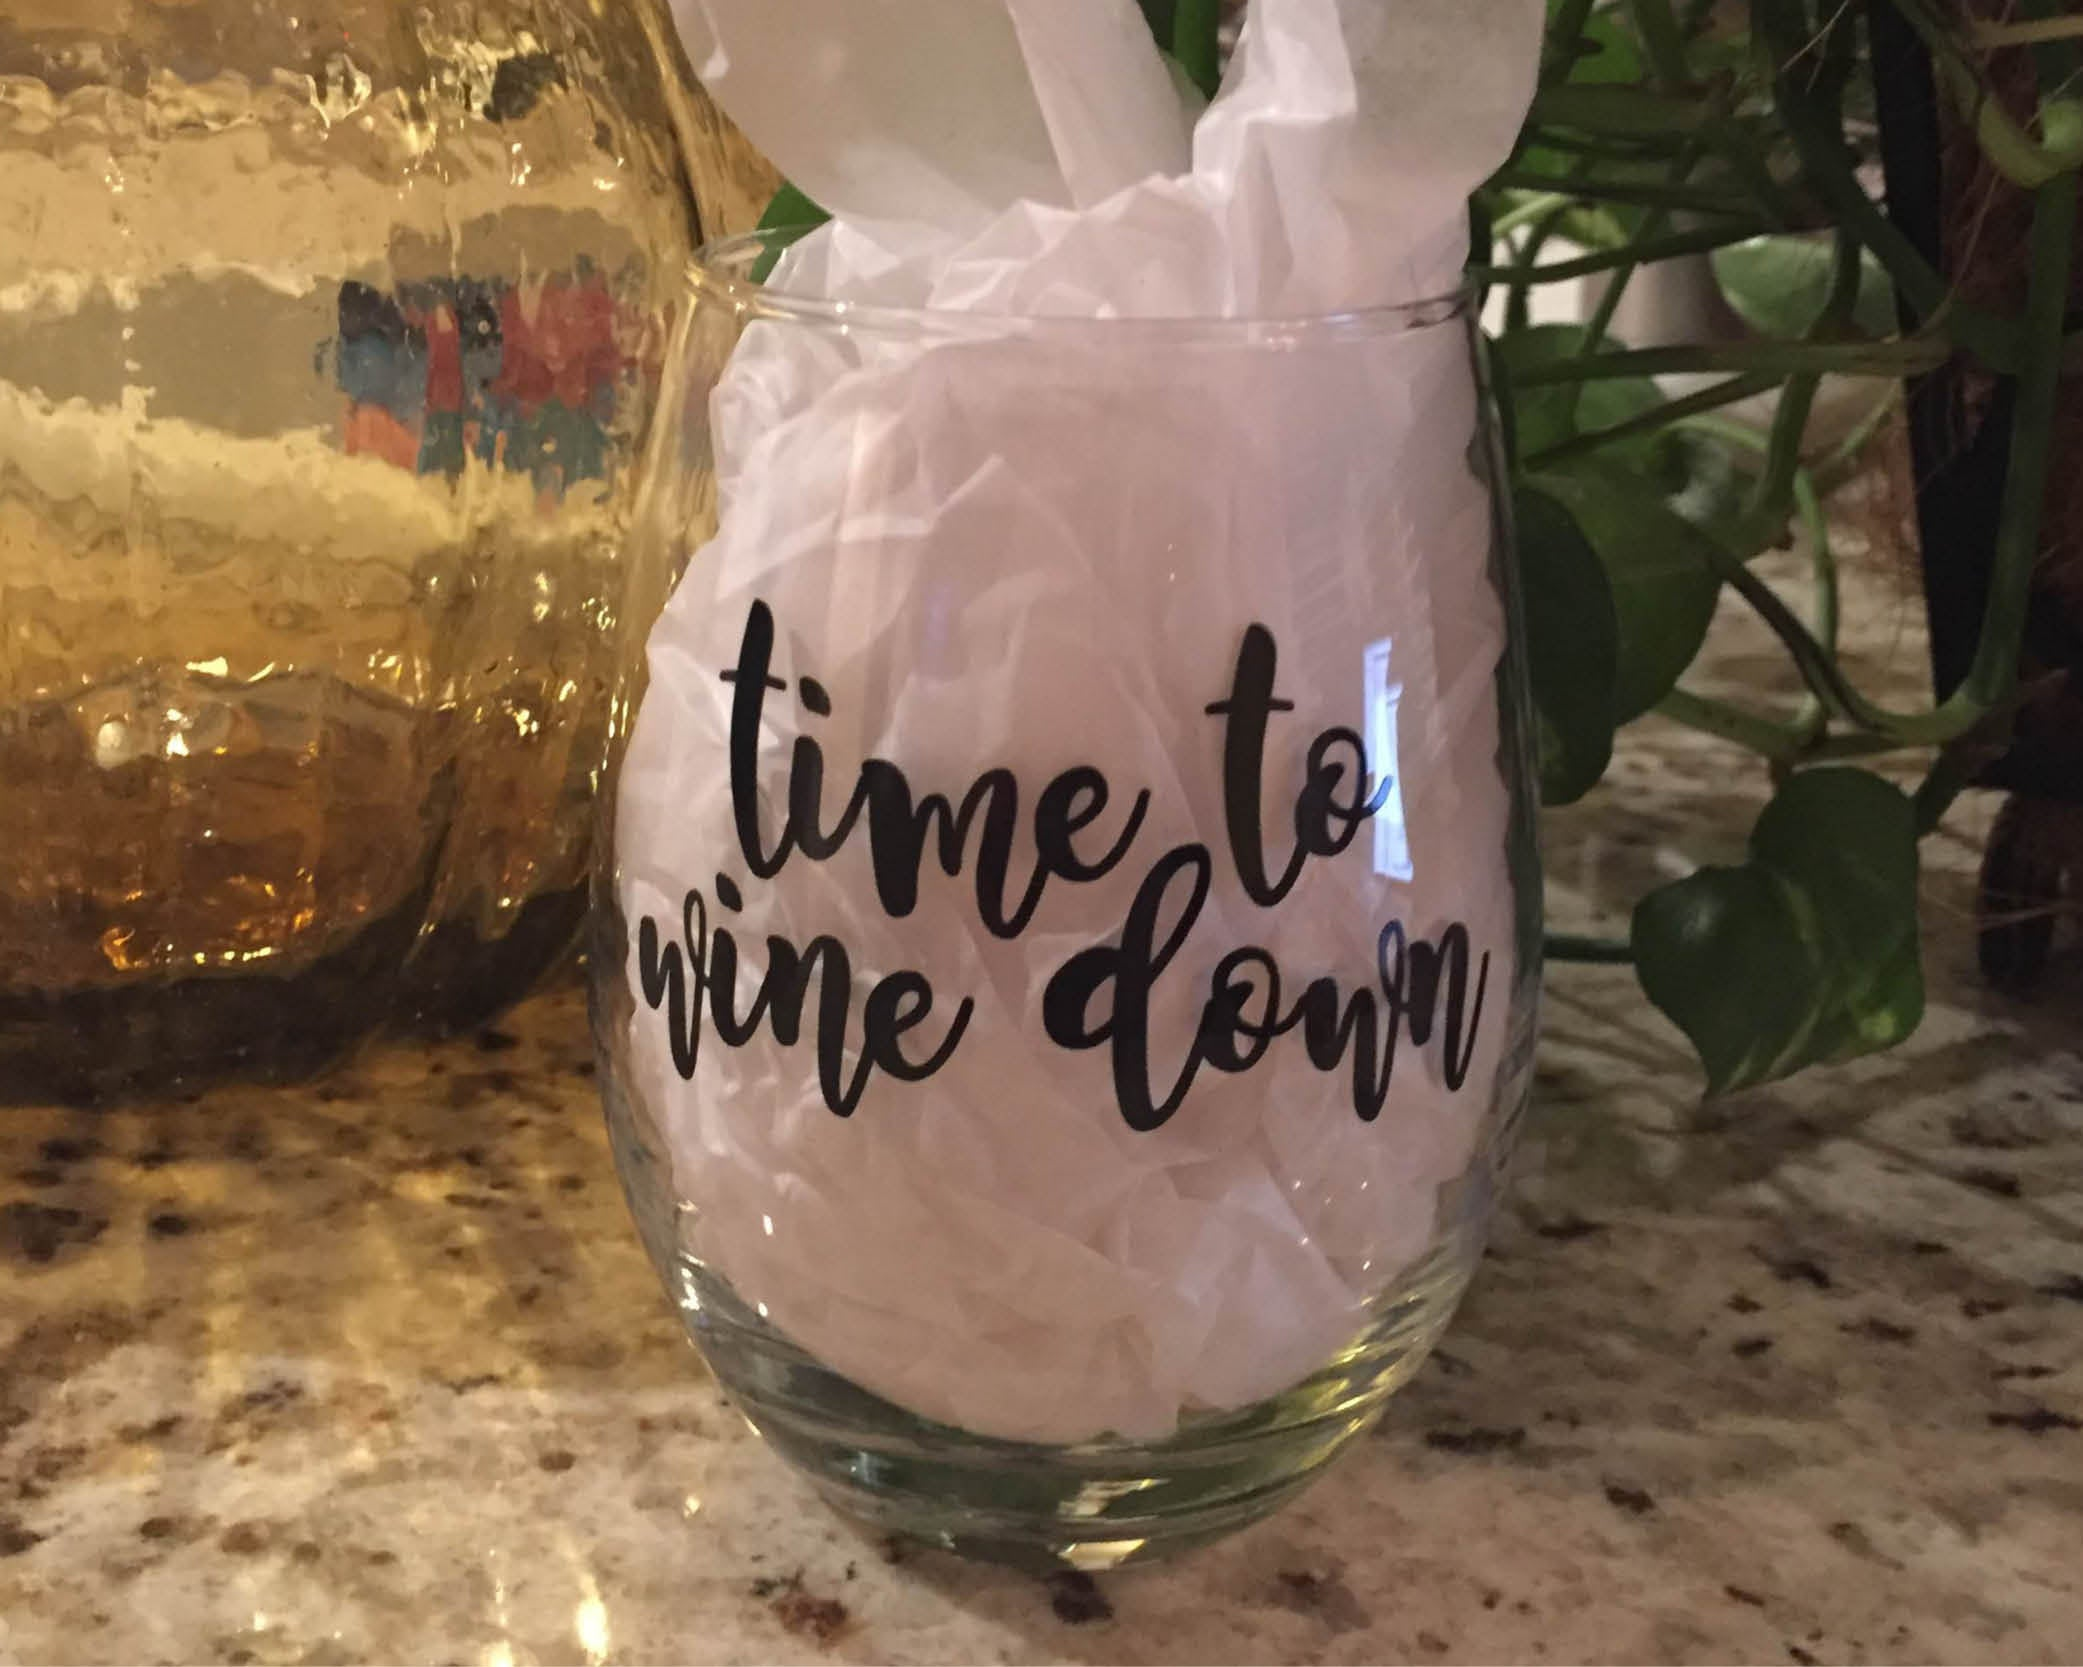 Time to Wine Down Stemless Wine Glass